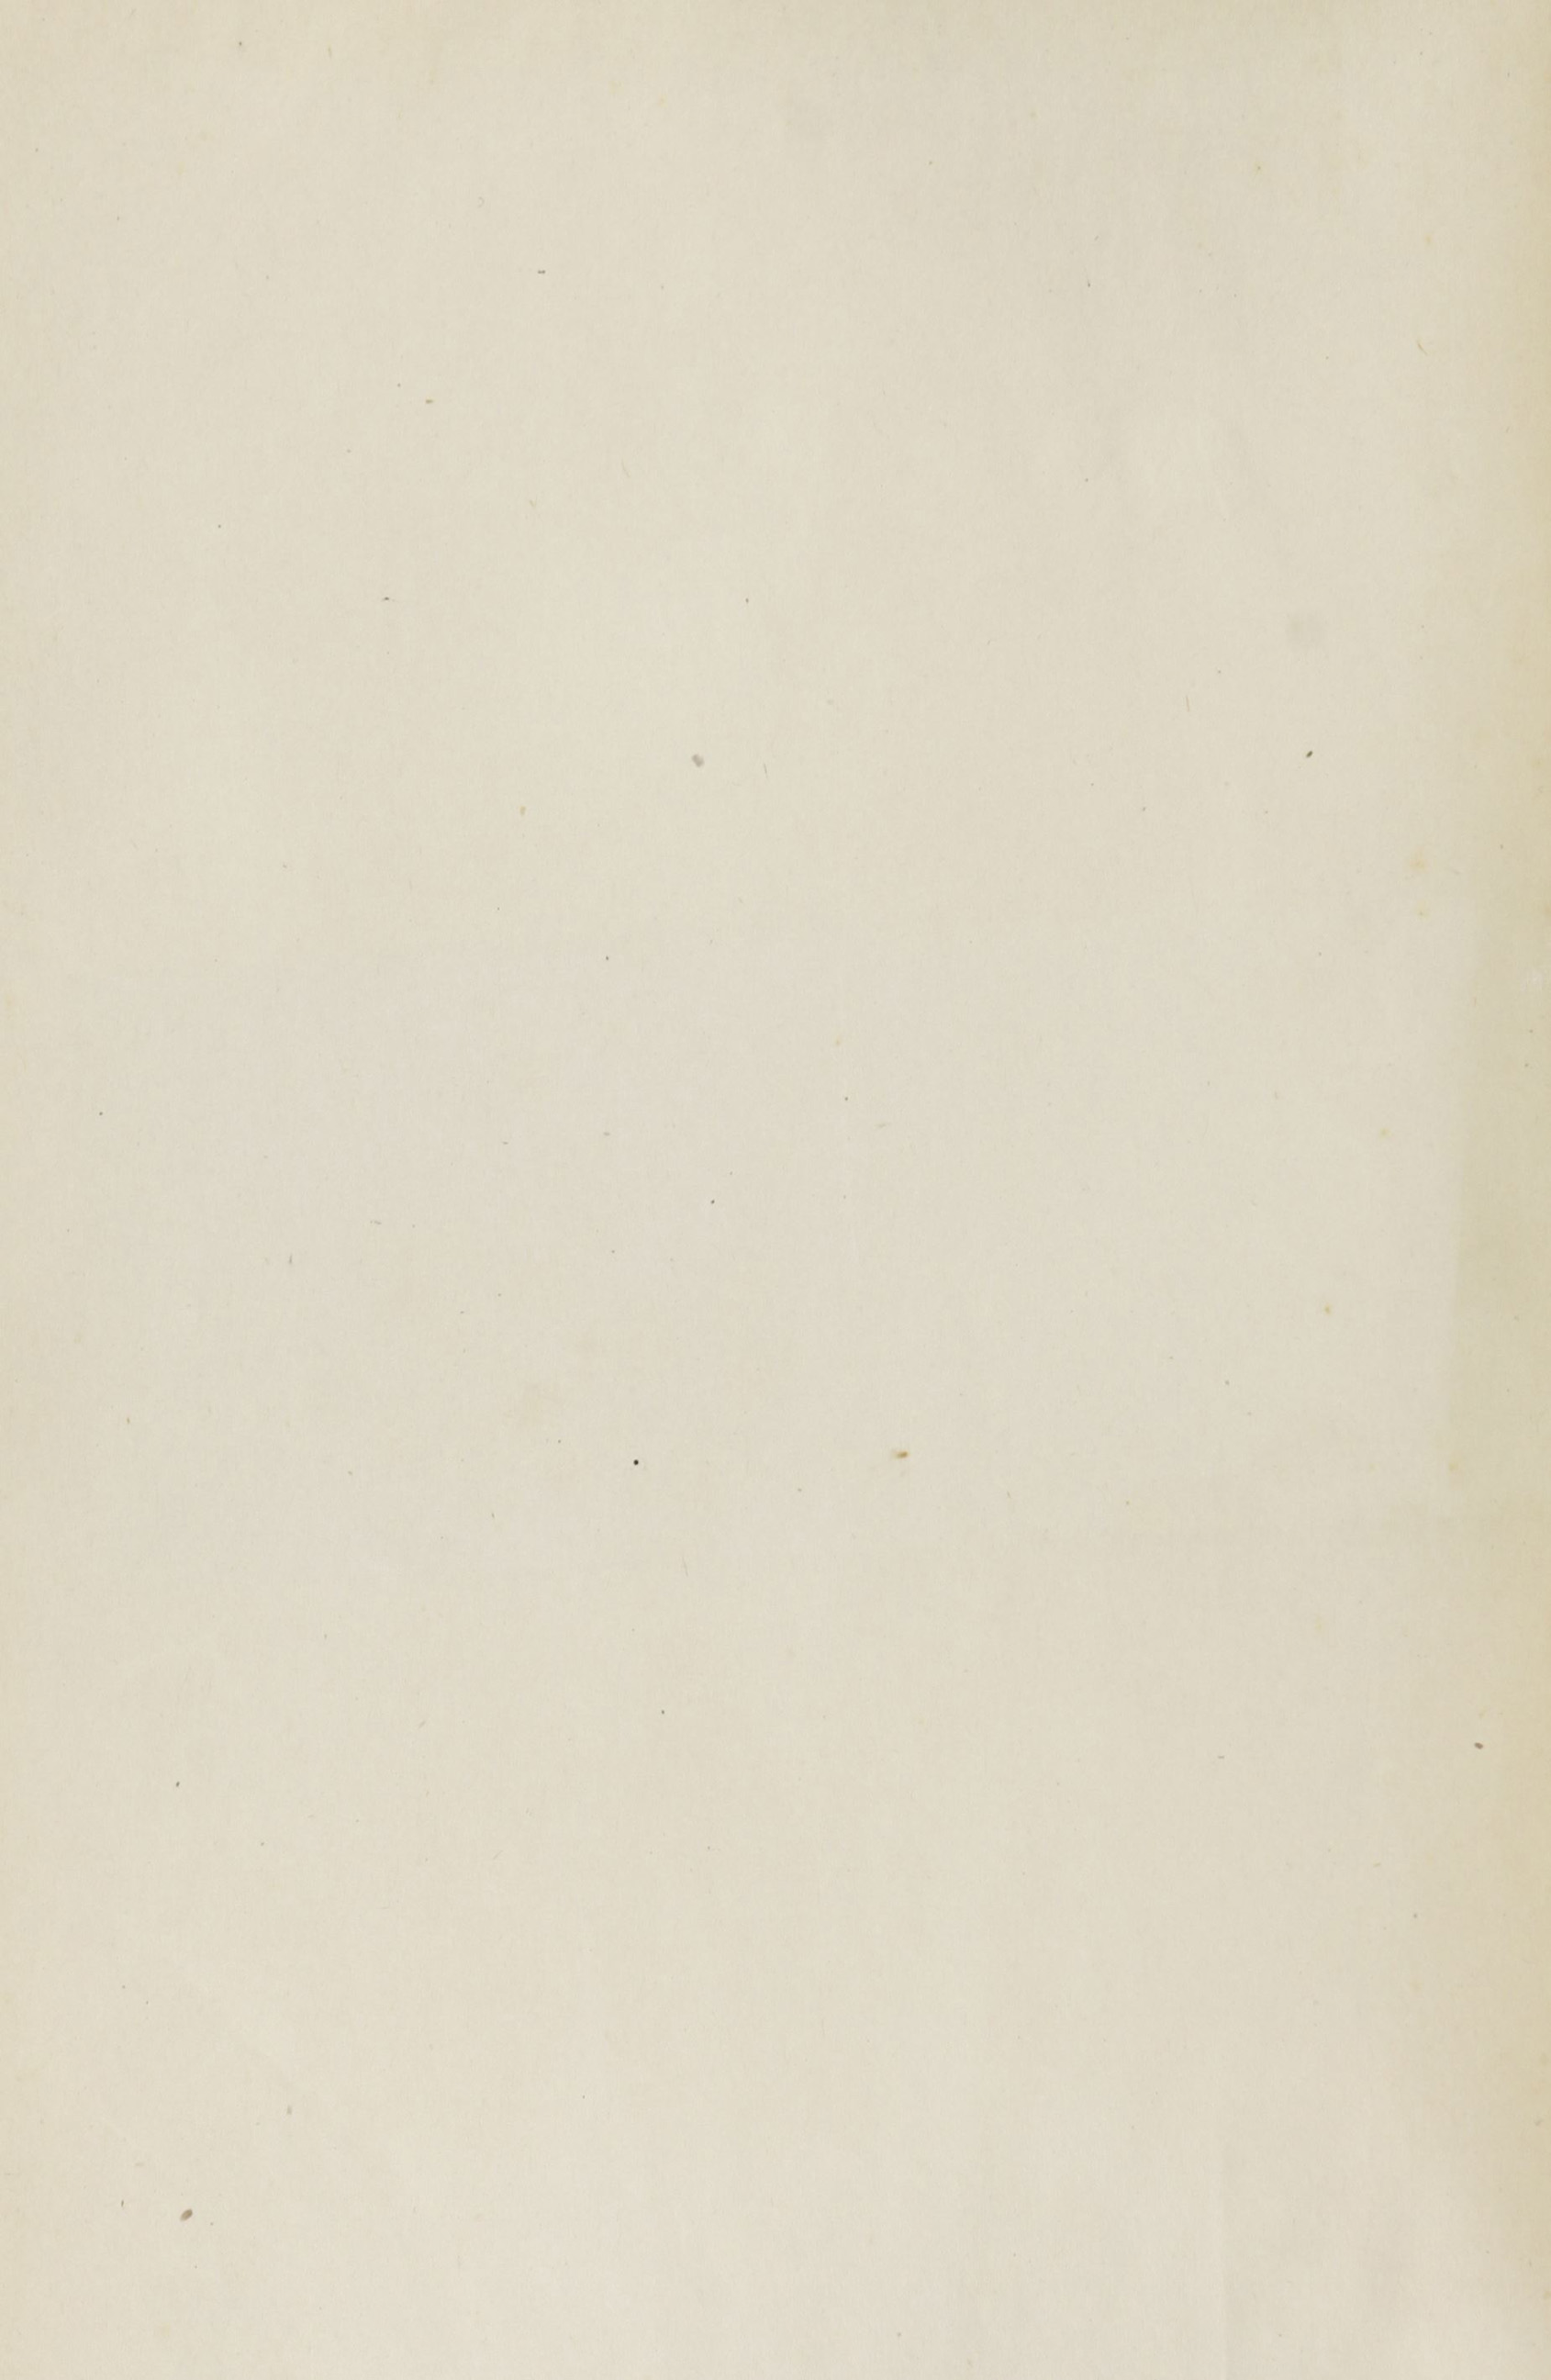 Charleston Yearbook, 1916, blank page